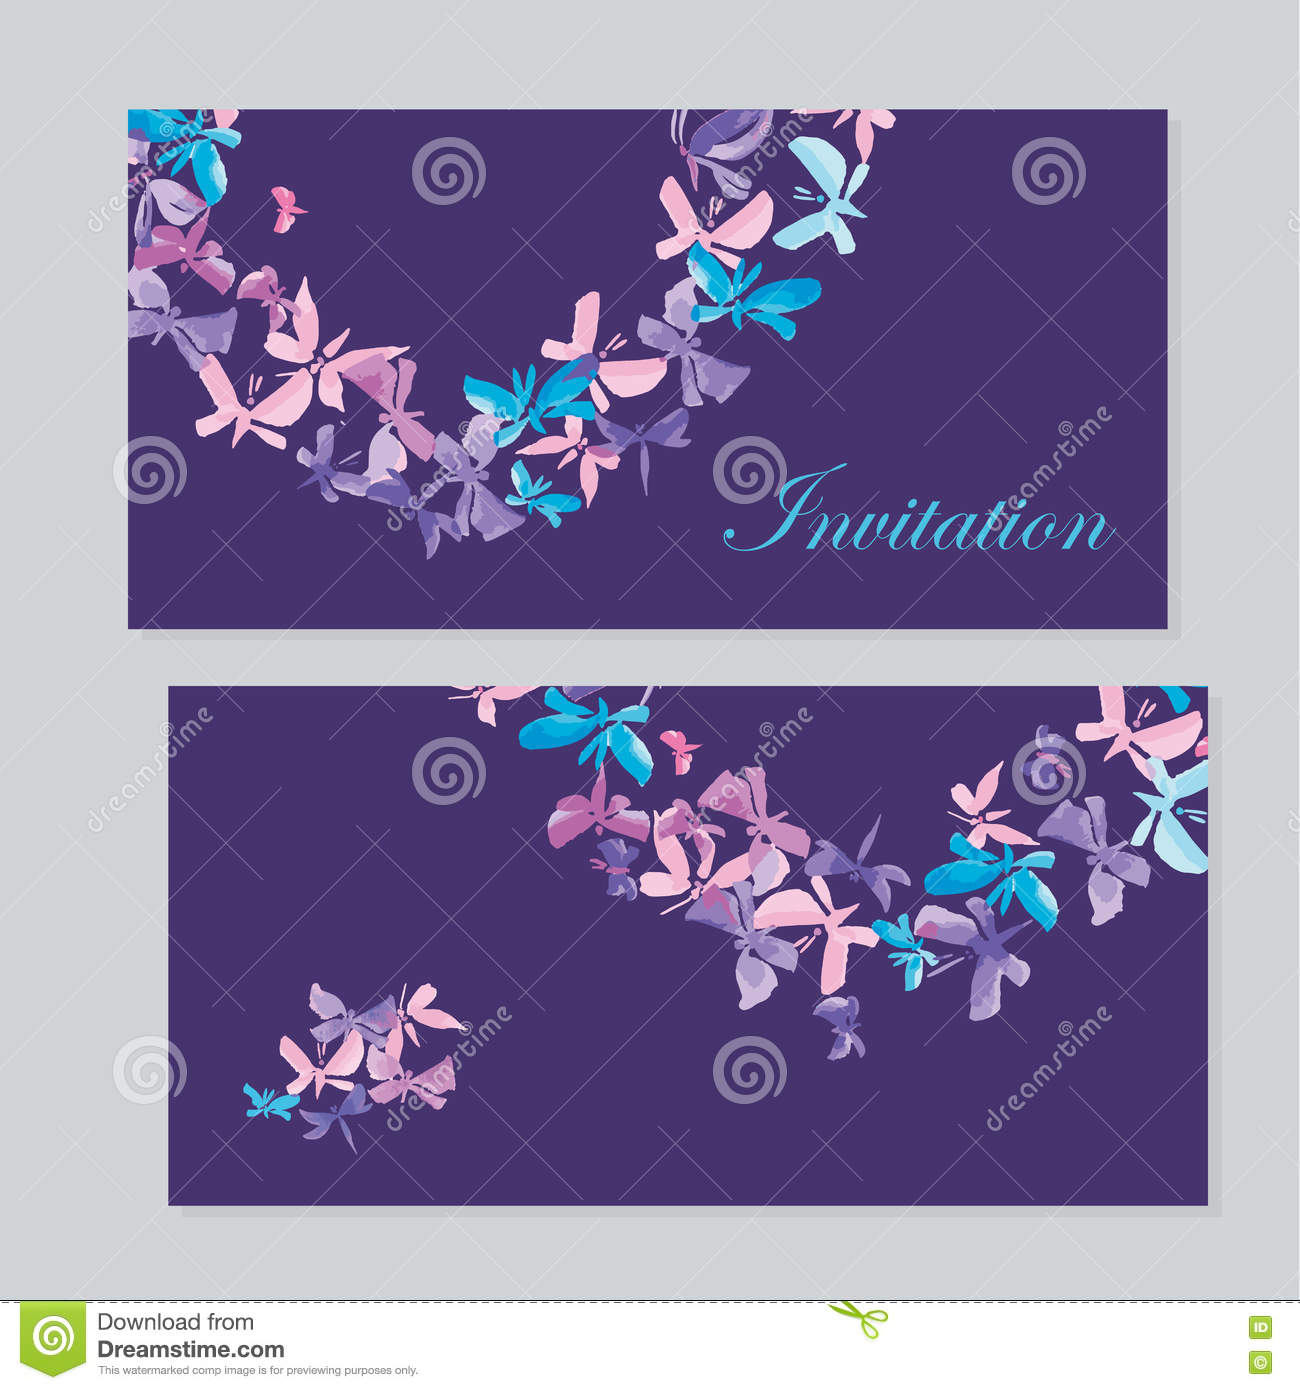 Watercolor Butterfly Invitation Stock Vector - Illustration of ...